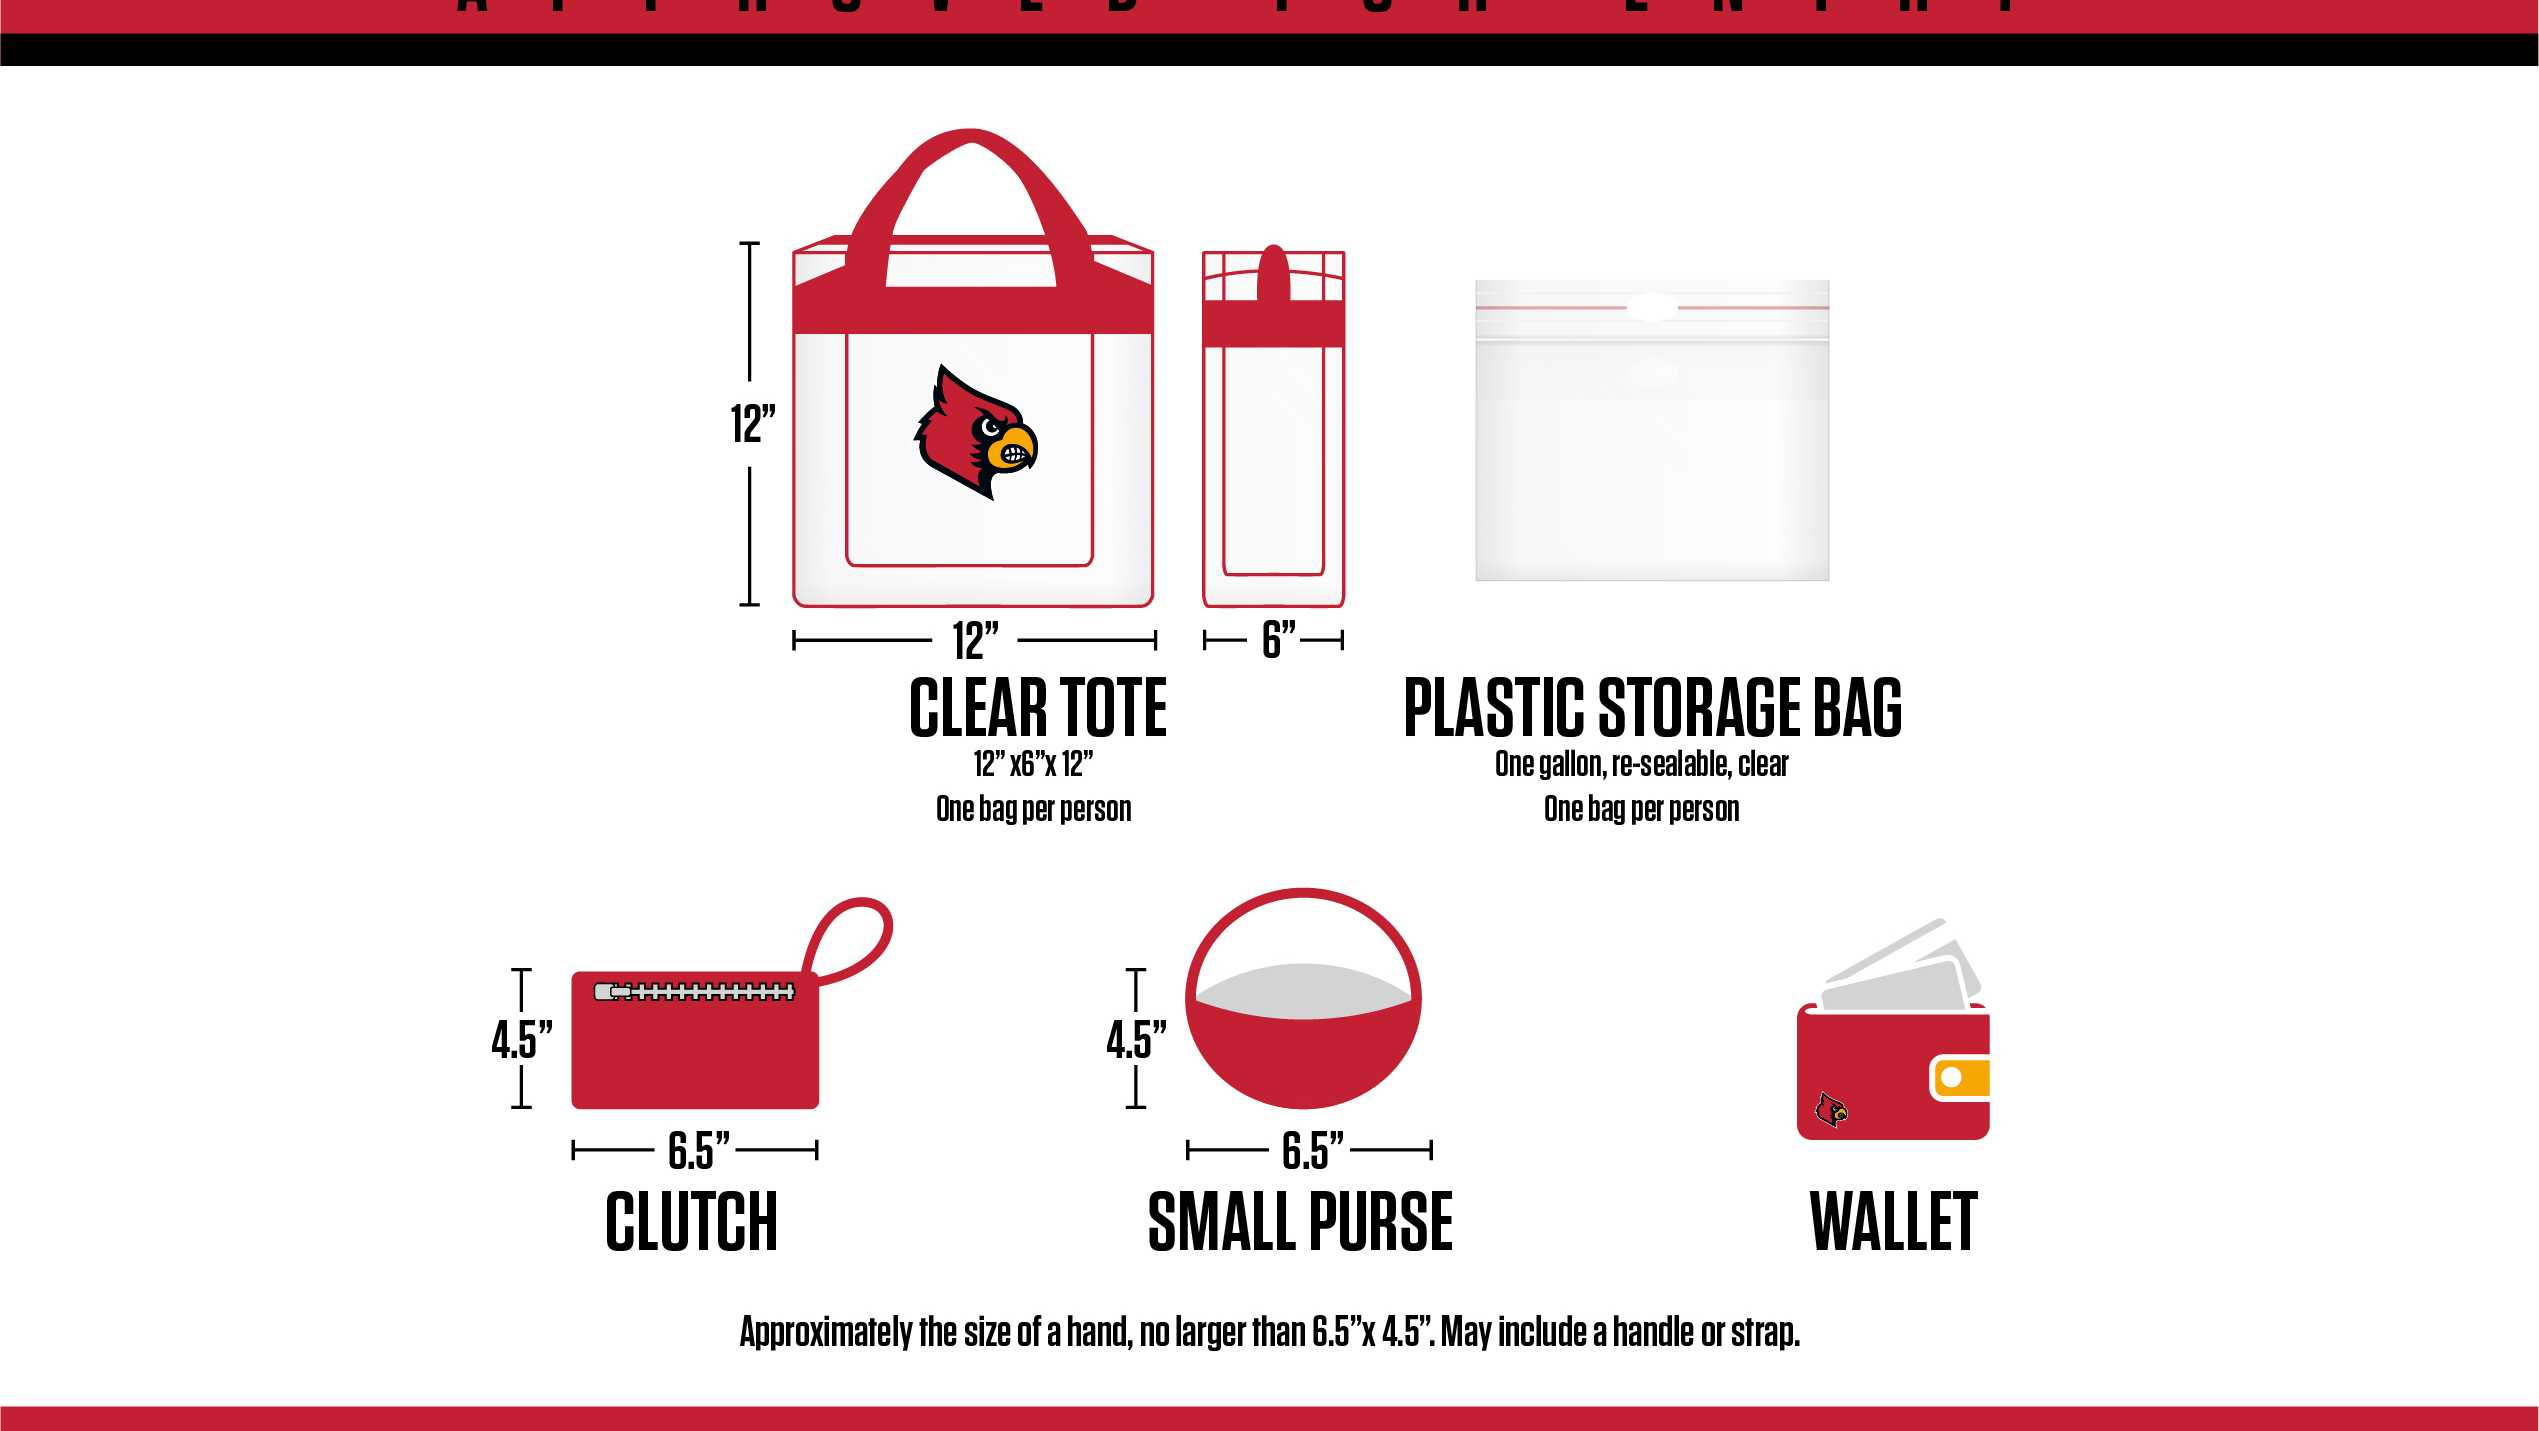 Louisville Athletics, clear bag policy